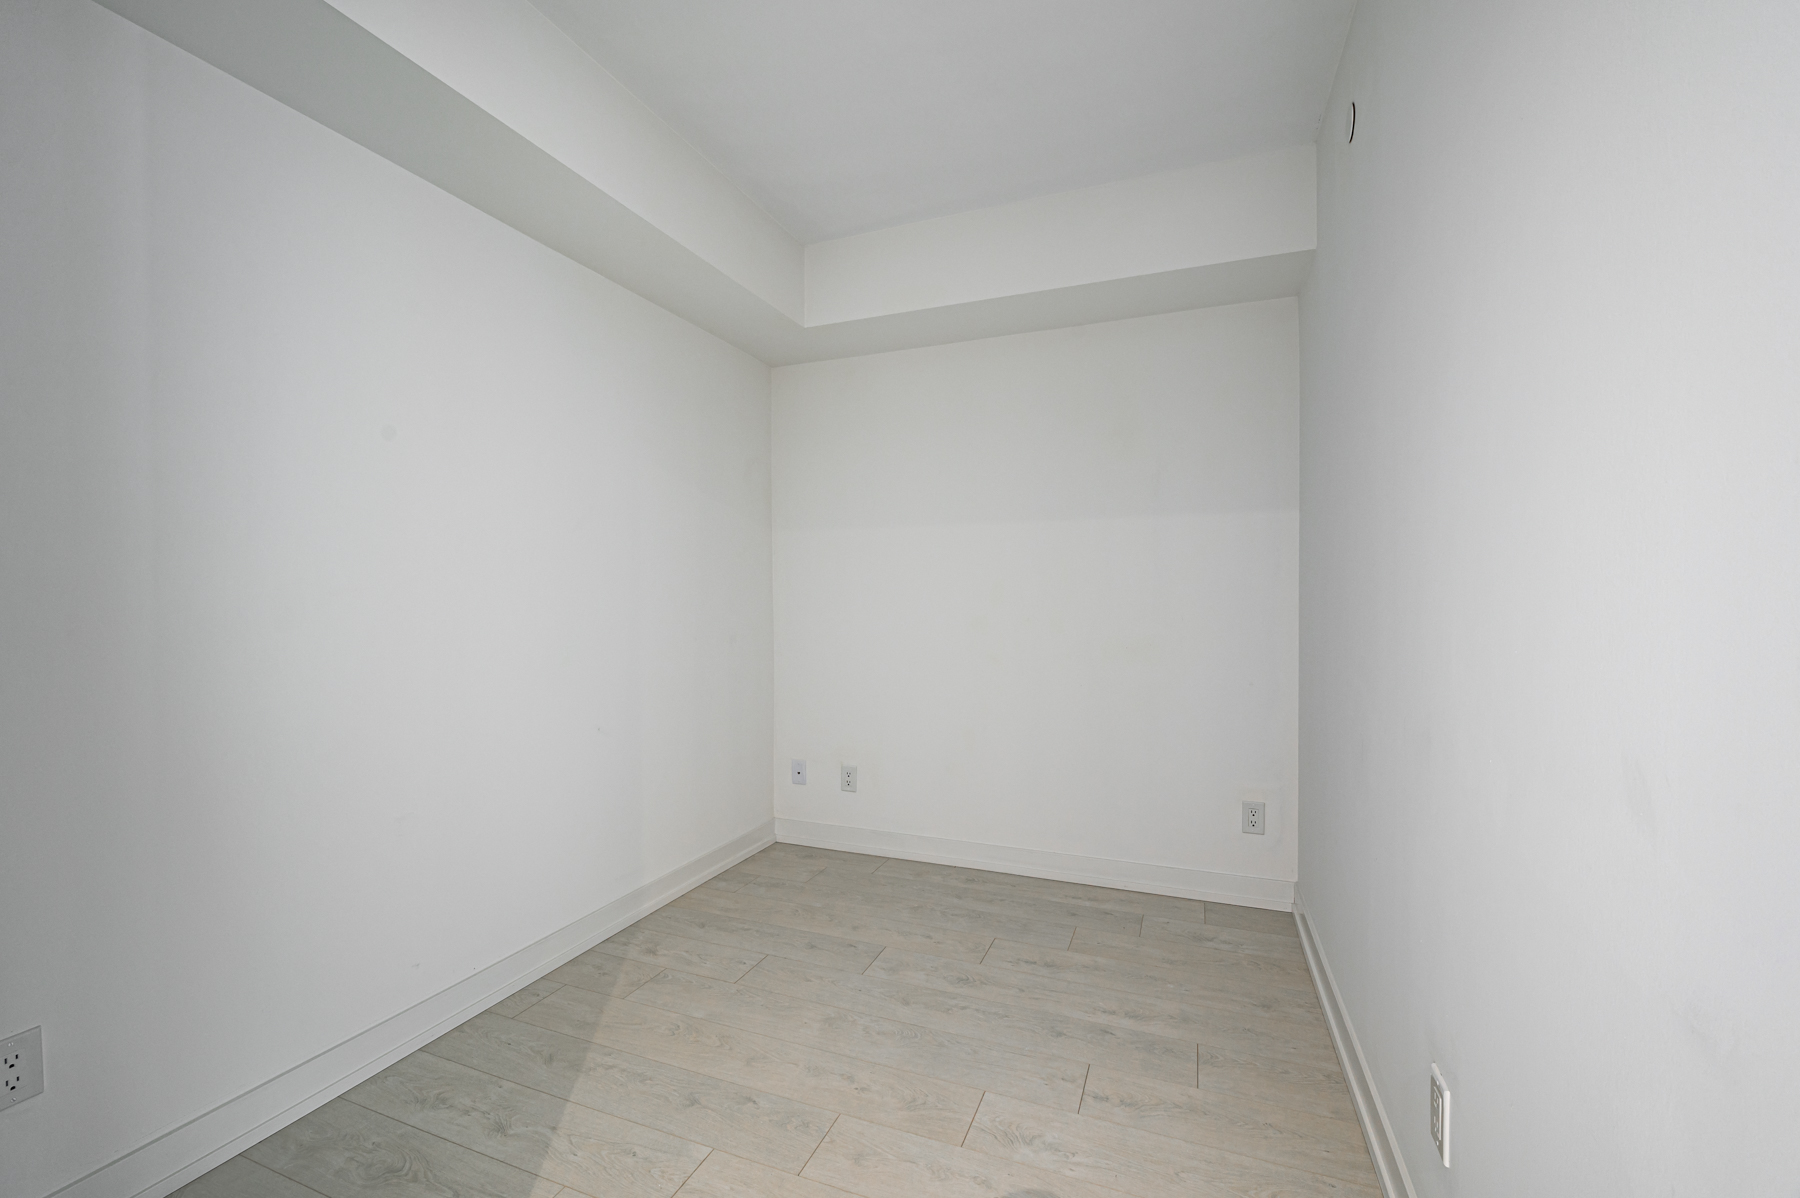 Empty condo den with gray walls and laminate floors.